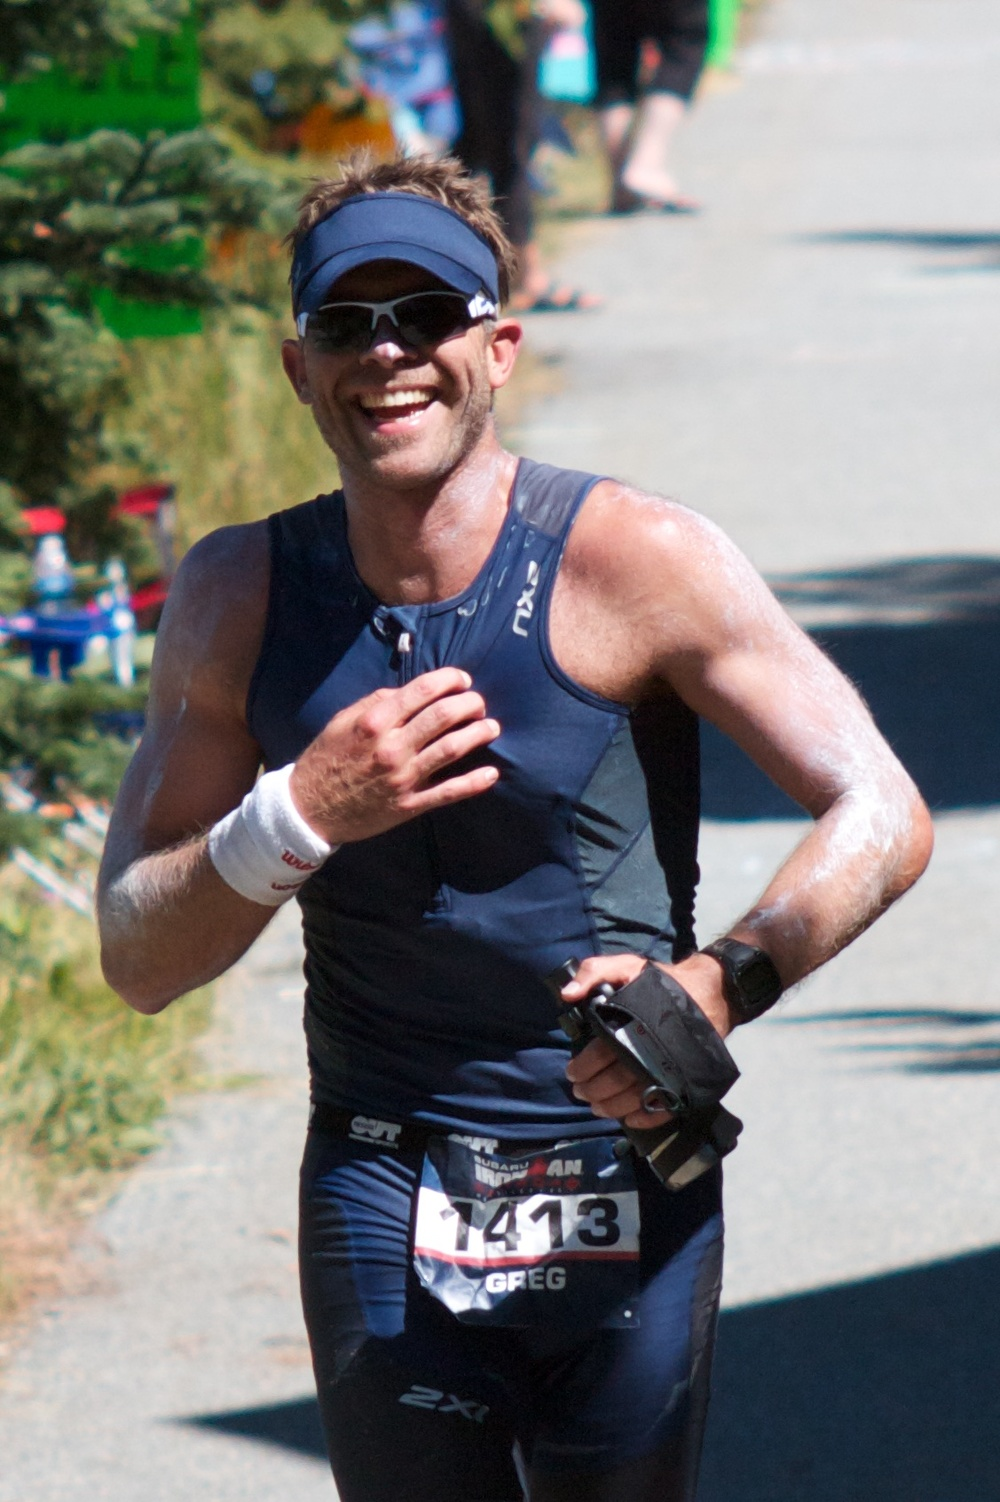 My training buddy Greg at Ironman Canada; stoked to see us cheering!